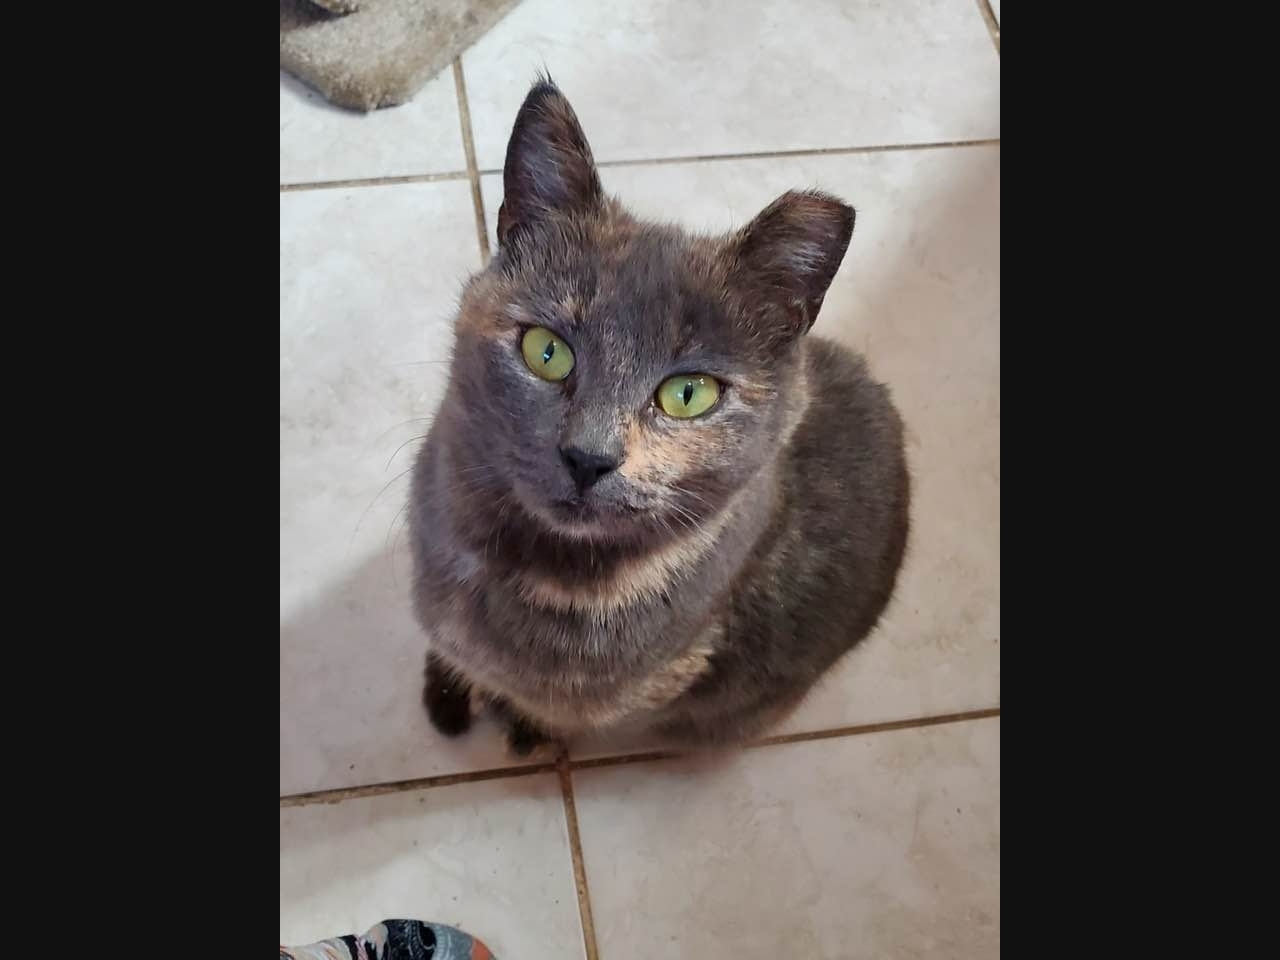 Woman's Heartbreaking Search For Cat Lost Before Christmas